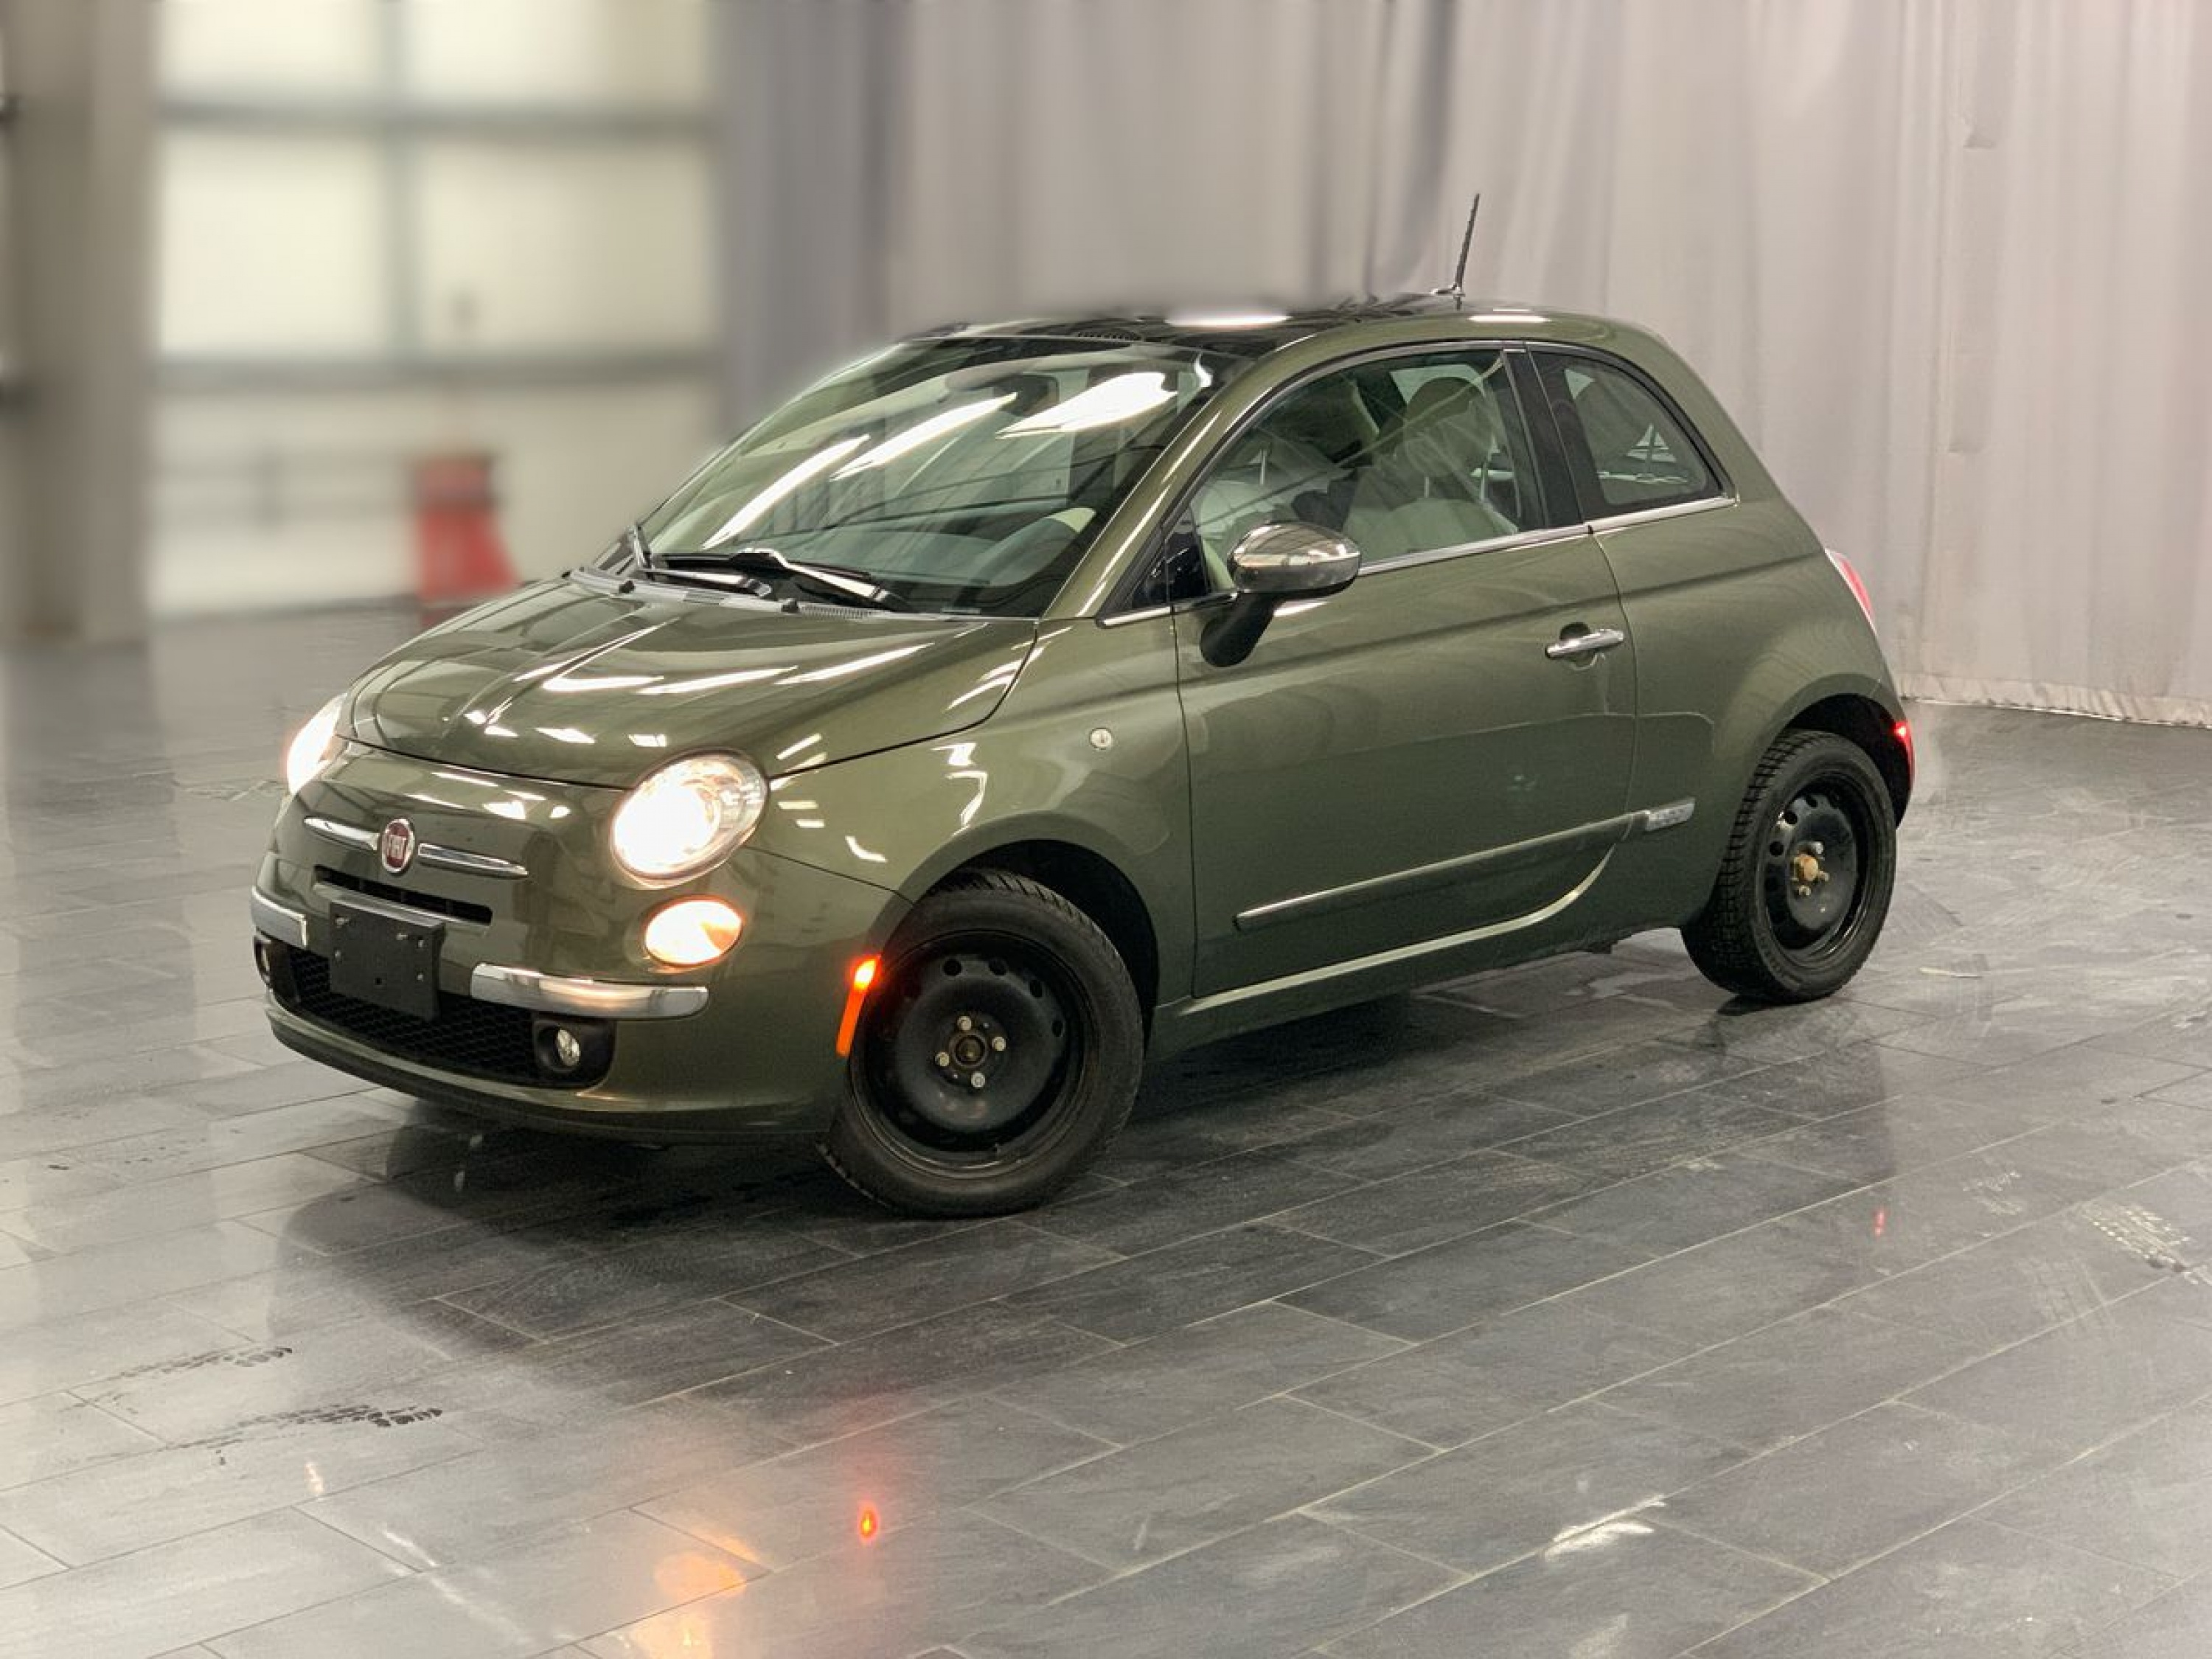 Pre-Owned 2014 FIAT 500 Lounge *Ready For Winter* Why you ask?